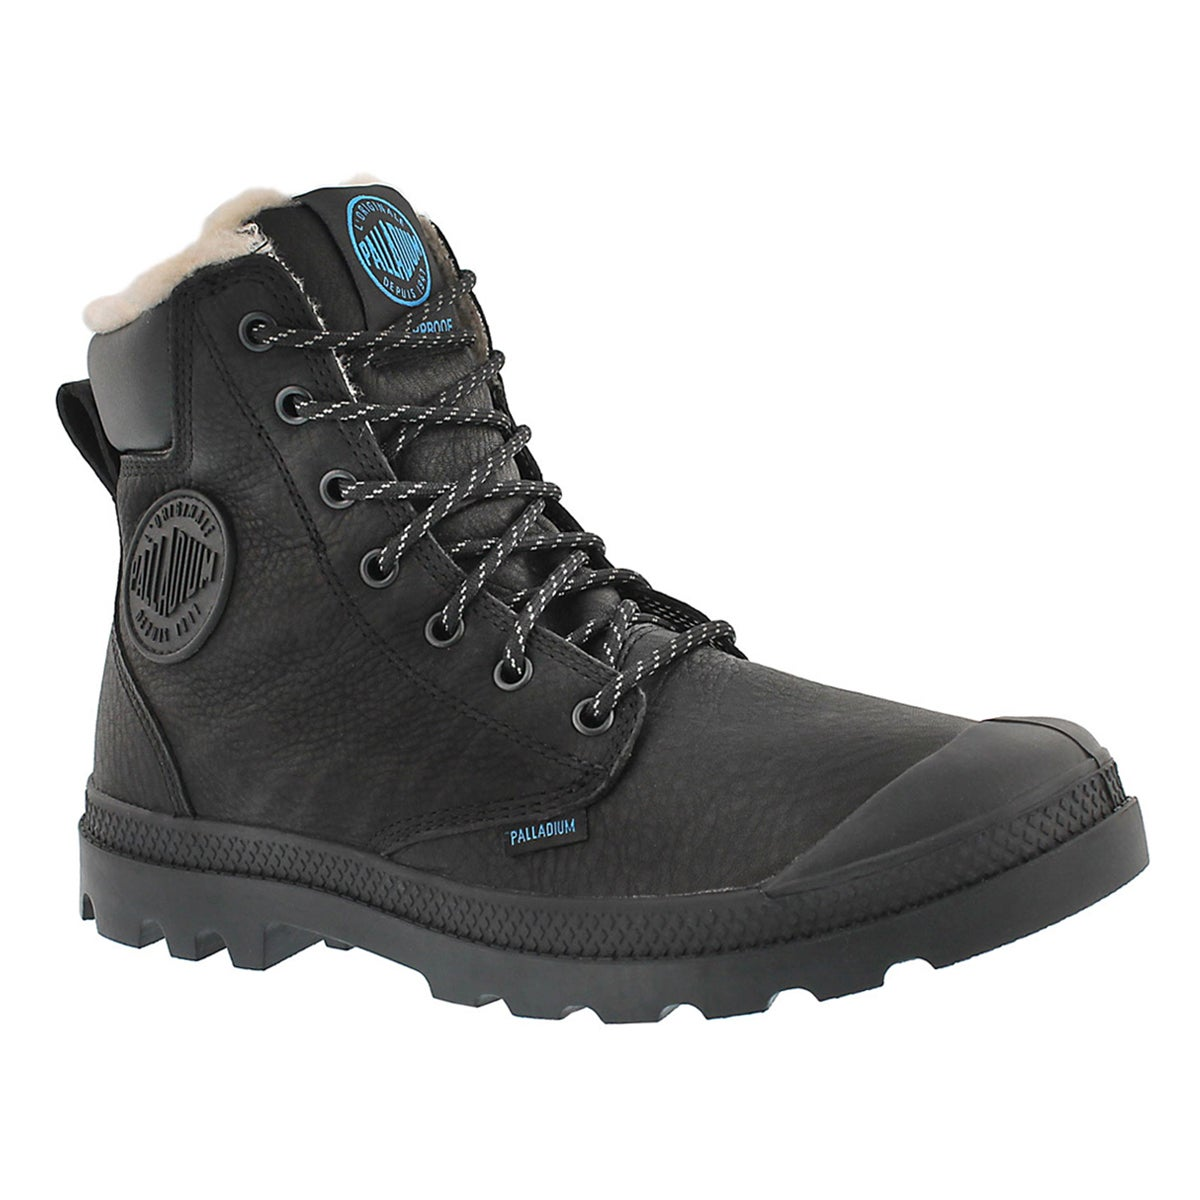 Men's PAMPA SPORT CUFF blk waterproof lined boots